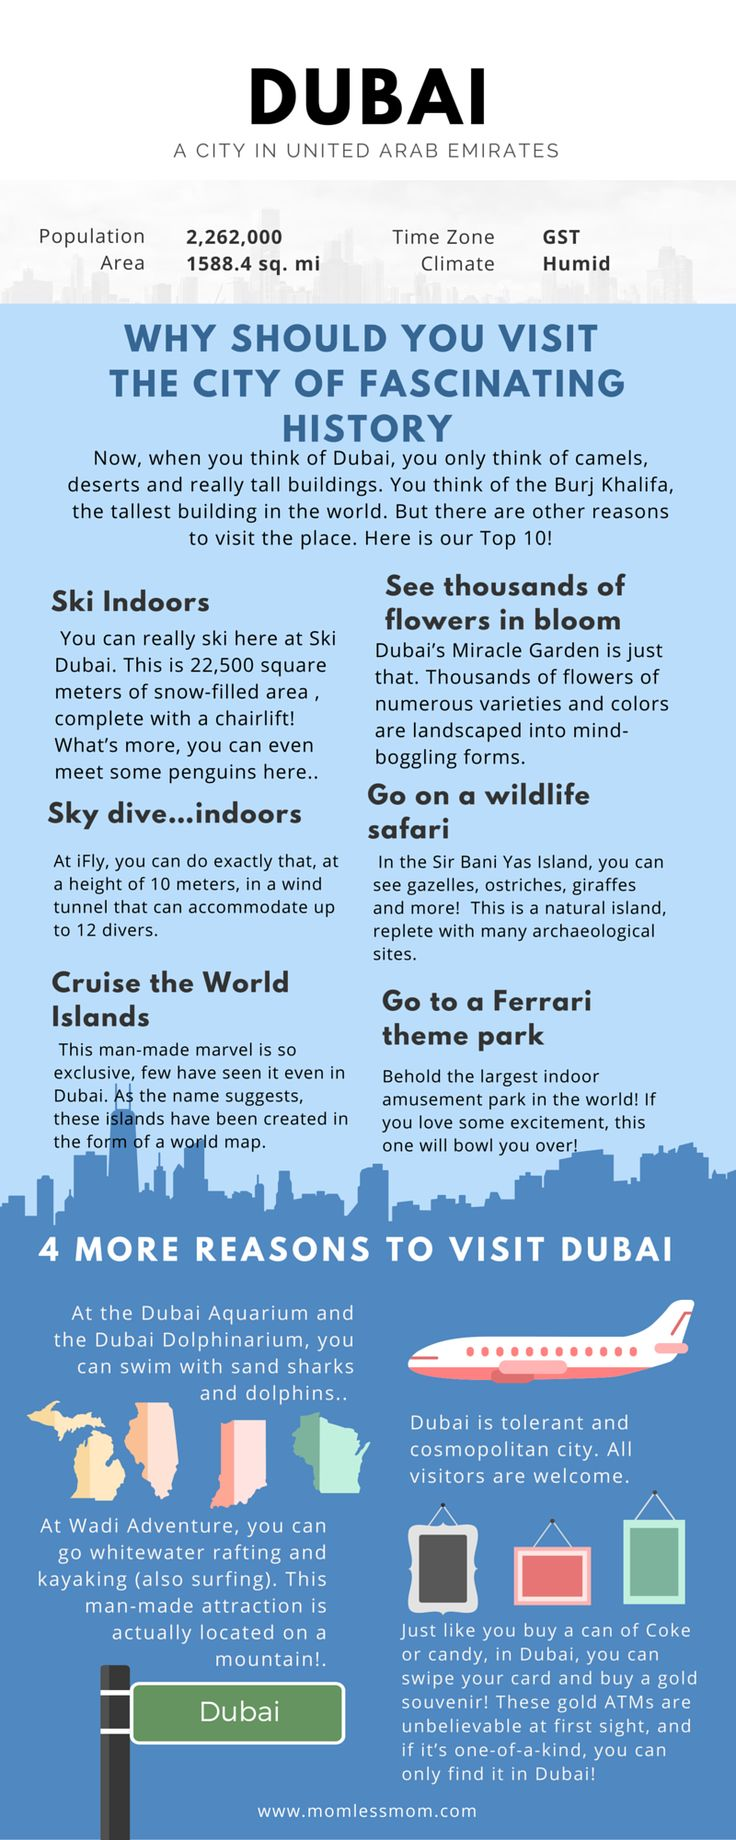 Here are the reasons to visit Dubai- You may be surprised reading some of the facts! http://momlessmom.com/10-things-to-do-in-dubai-for-fun/ #TravelDubai